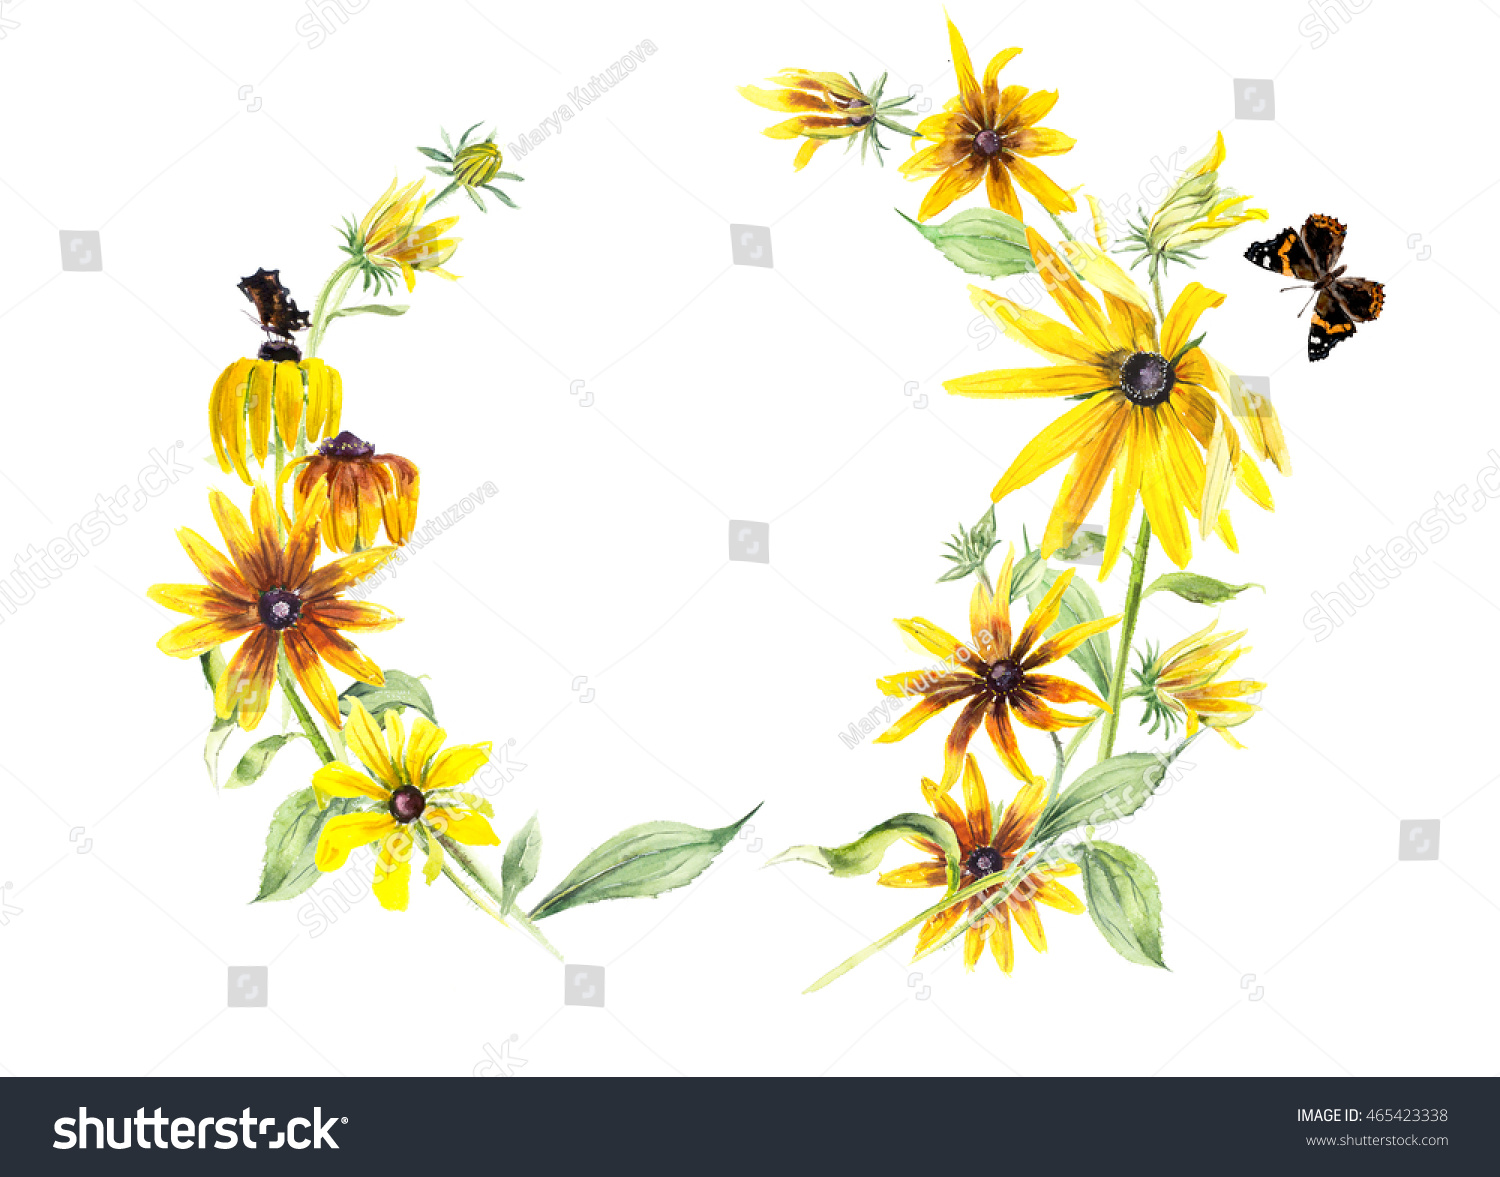 Royalty Free Stock Illustration Of Frame Rudbeckia Butterflies